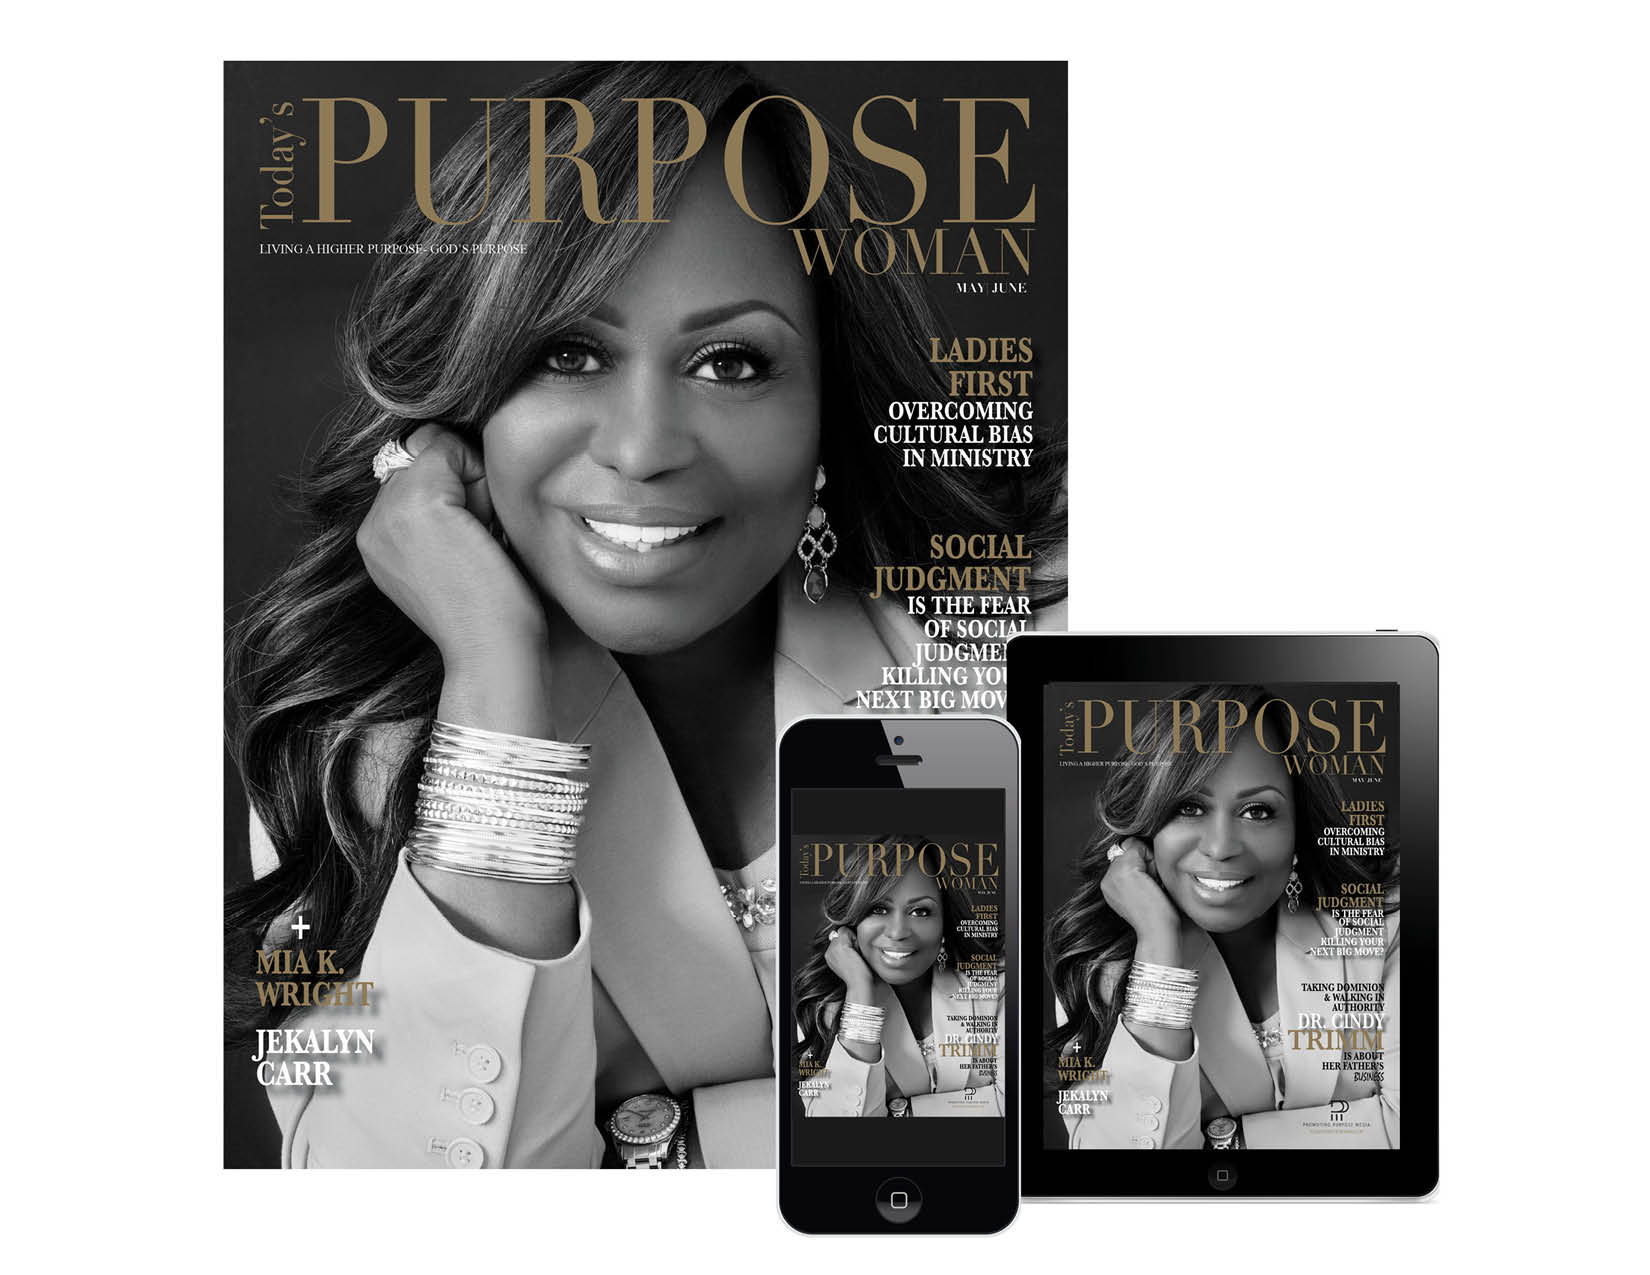 TODAY'S PURPOSE WOMAN - Today's Purpose Woman magazine is a bi-monthly publication that inspires, empowers and celebrates women who are purpose driven. We strive to engage and provide thought-provoking articles and strategies that will elevate the lives of readers spiritually, personally and professionally.Editor-in-Chief: Sherrell ValdezloquiOrder your copy today!